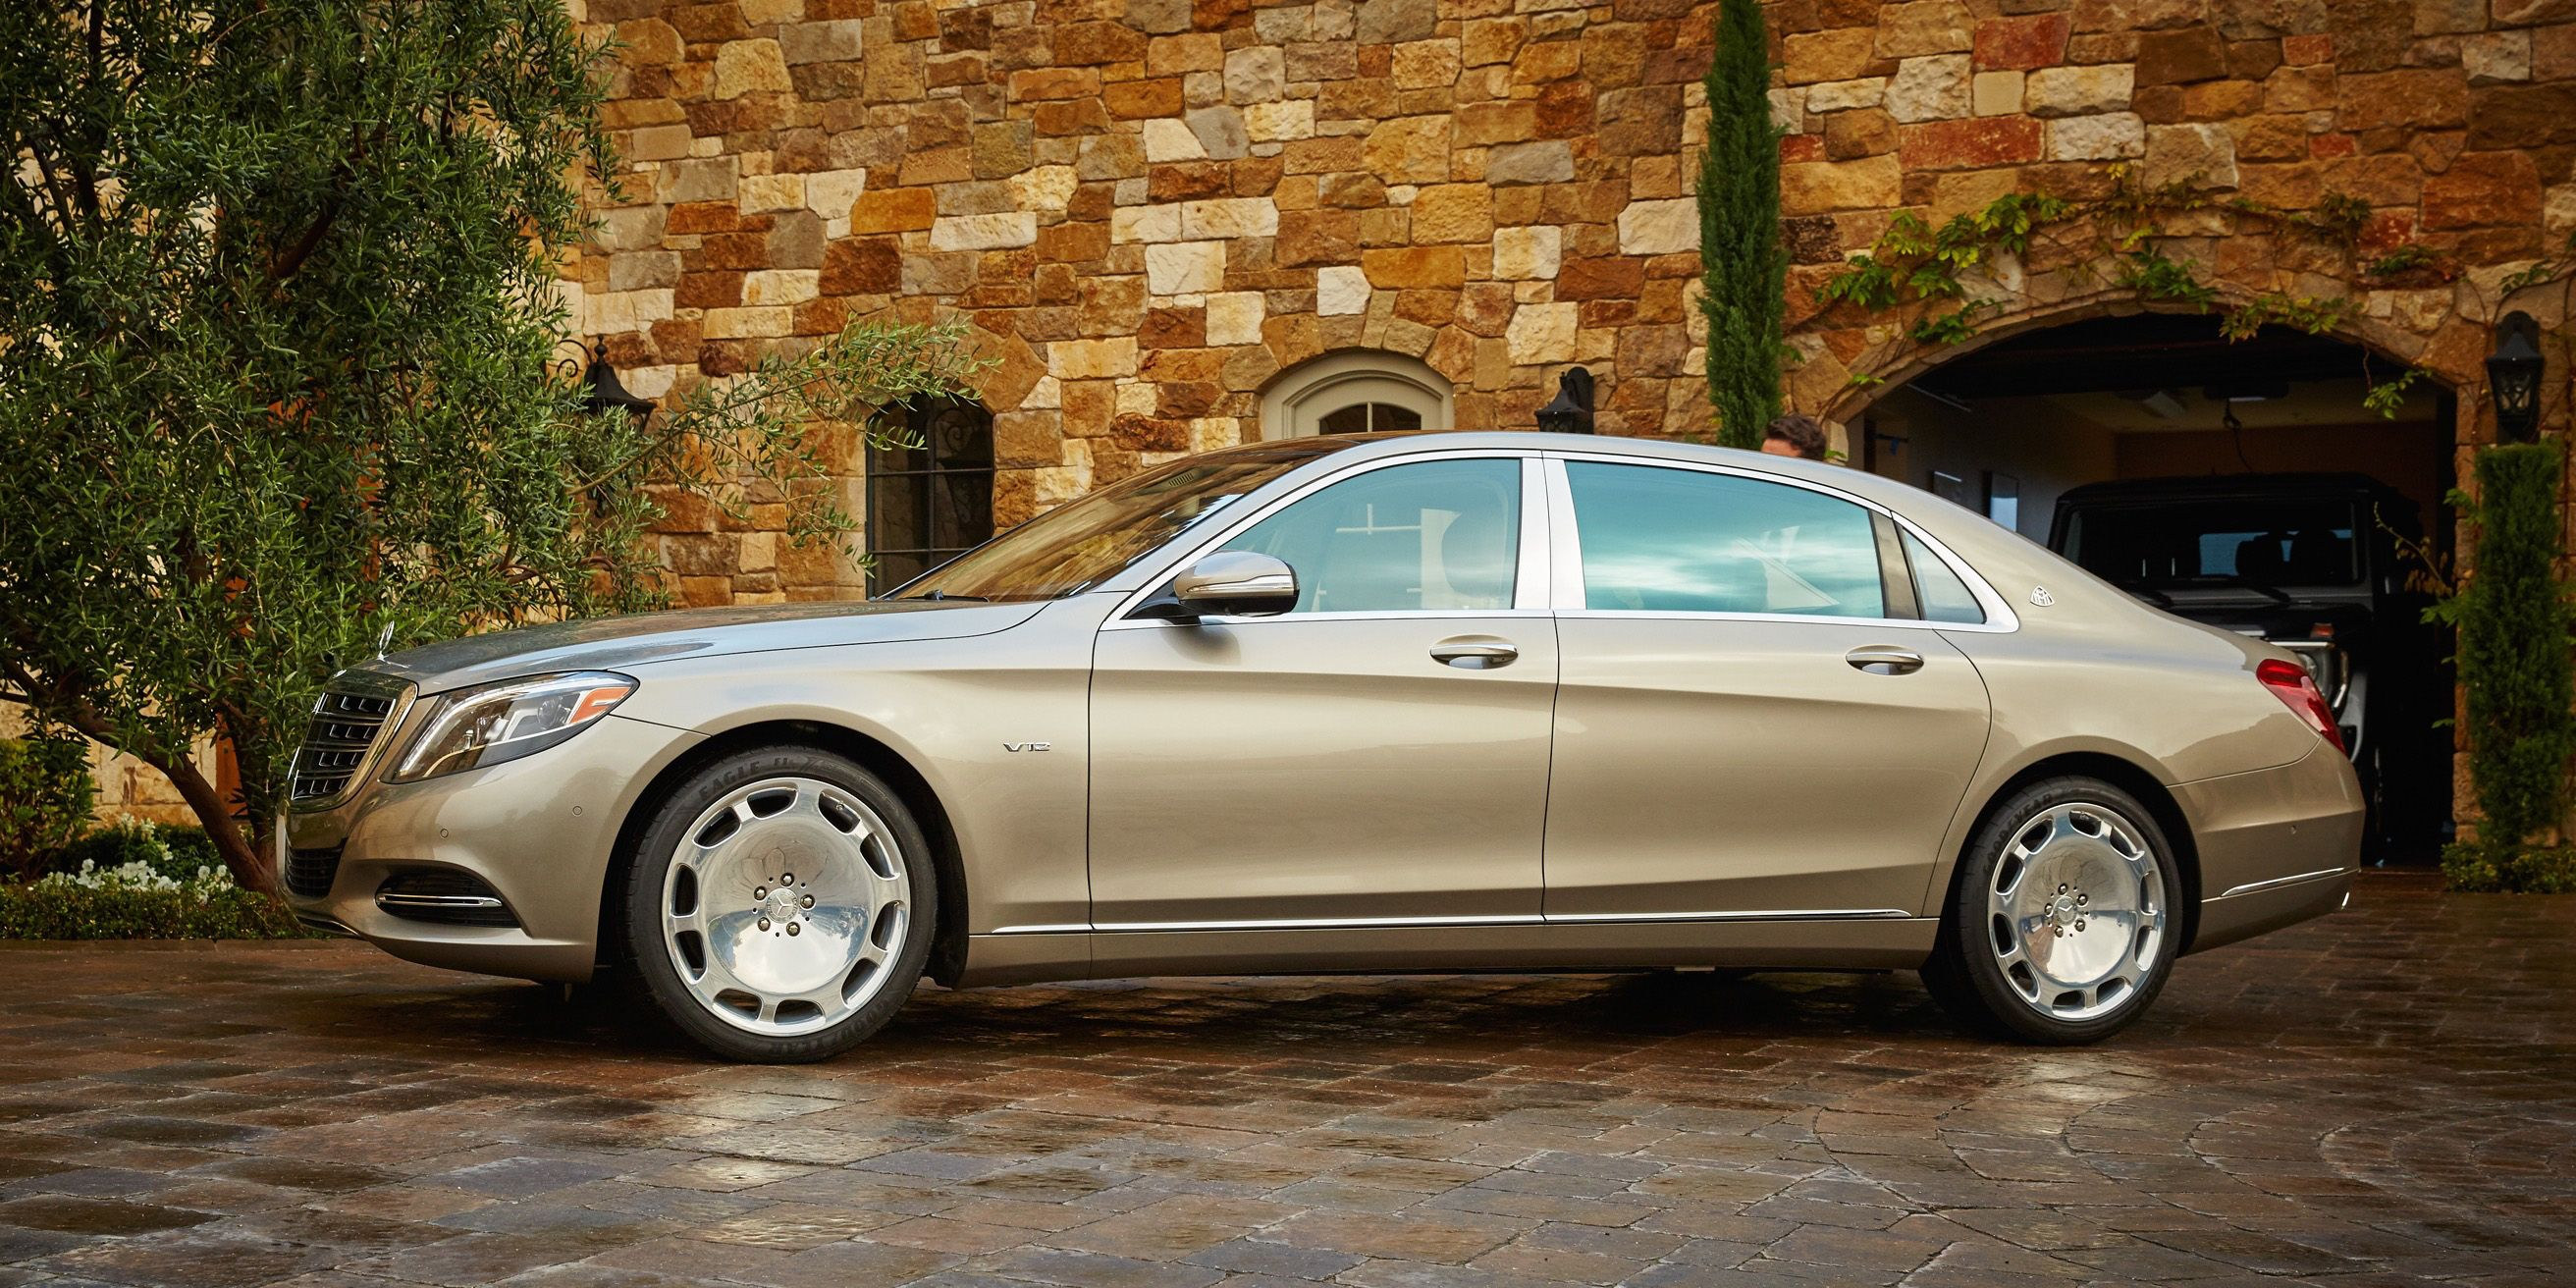 Mercedes-Maybach S600 - A Night Out In A Mercedes-Maybach S600